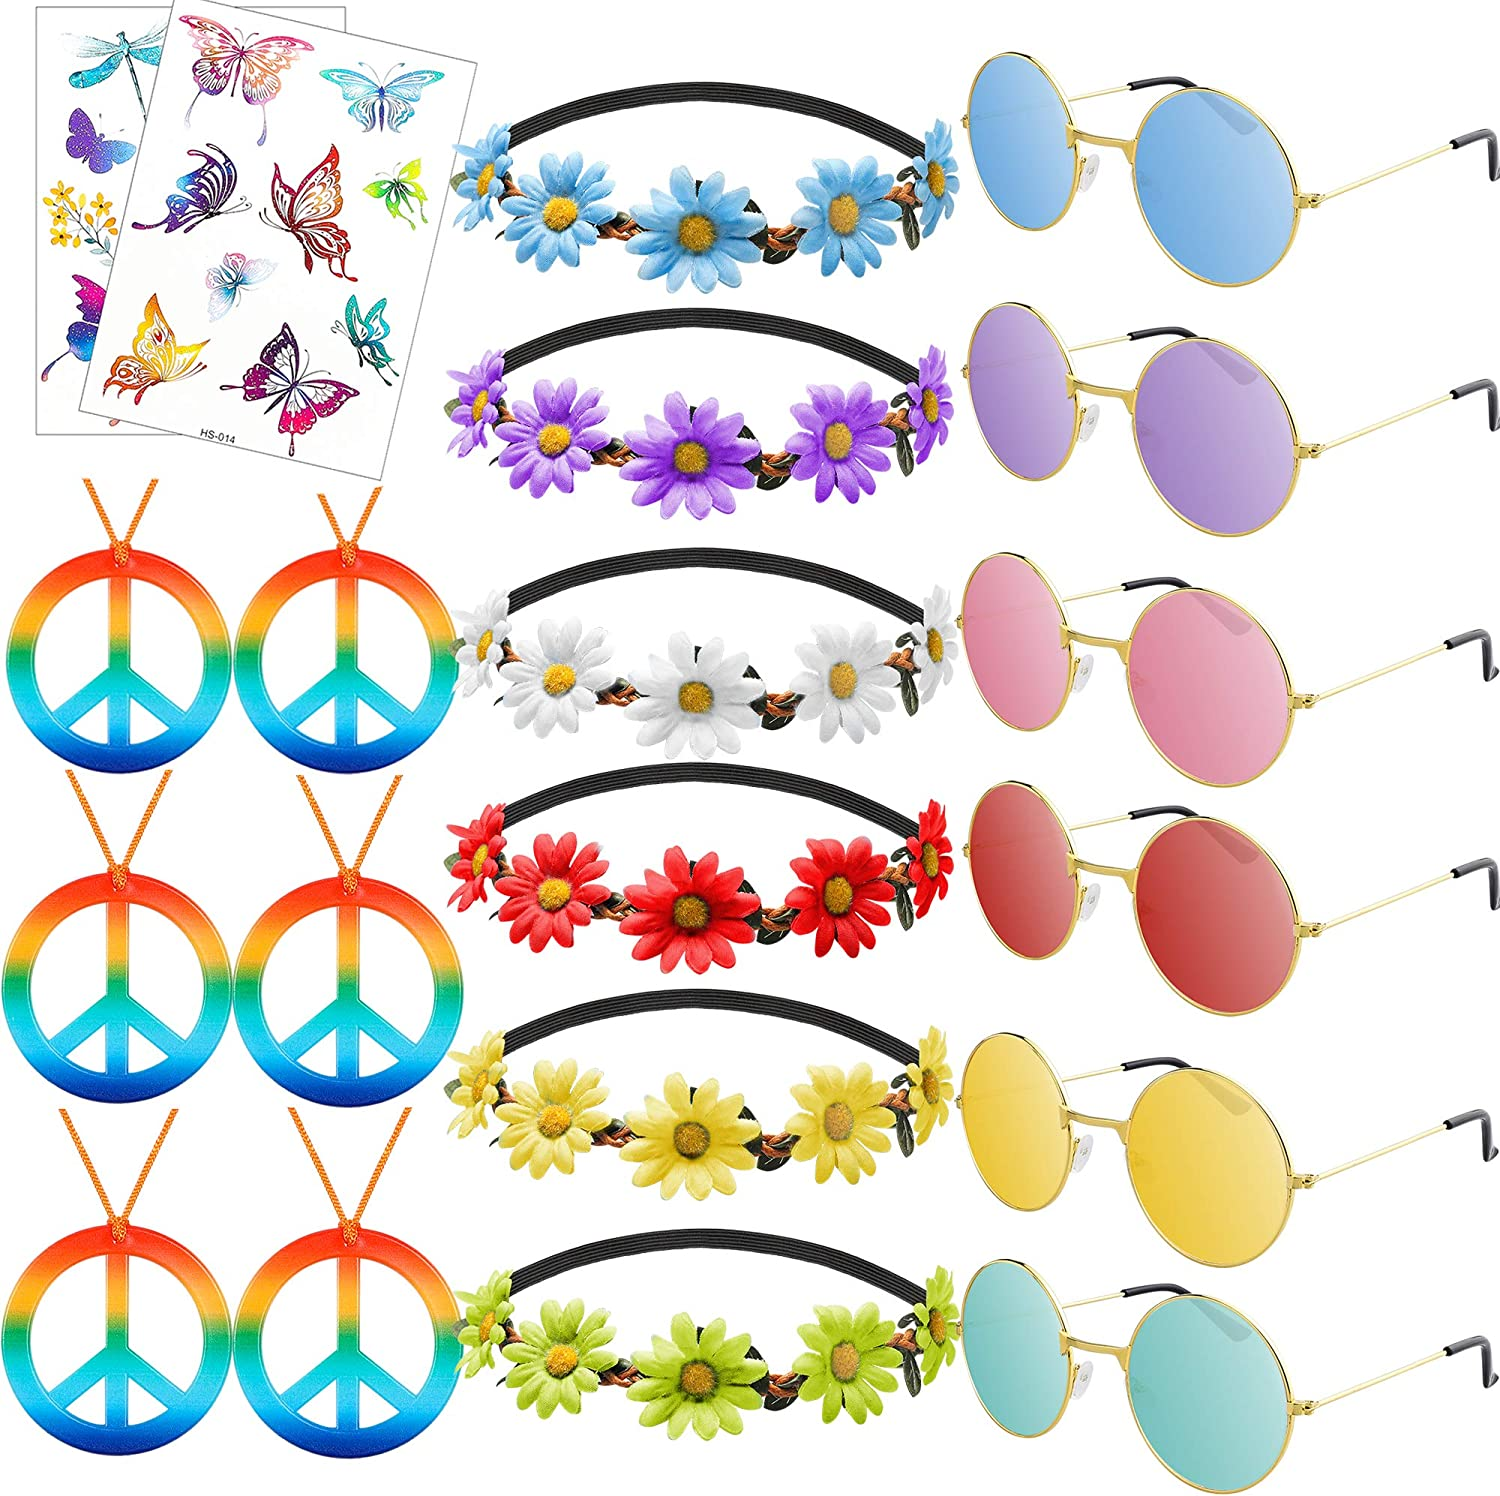 R HORSE 20 Pcs Hippie Accessories Costume Vin Limited time for free shipping Set Raleigh Mall